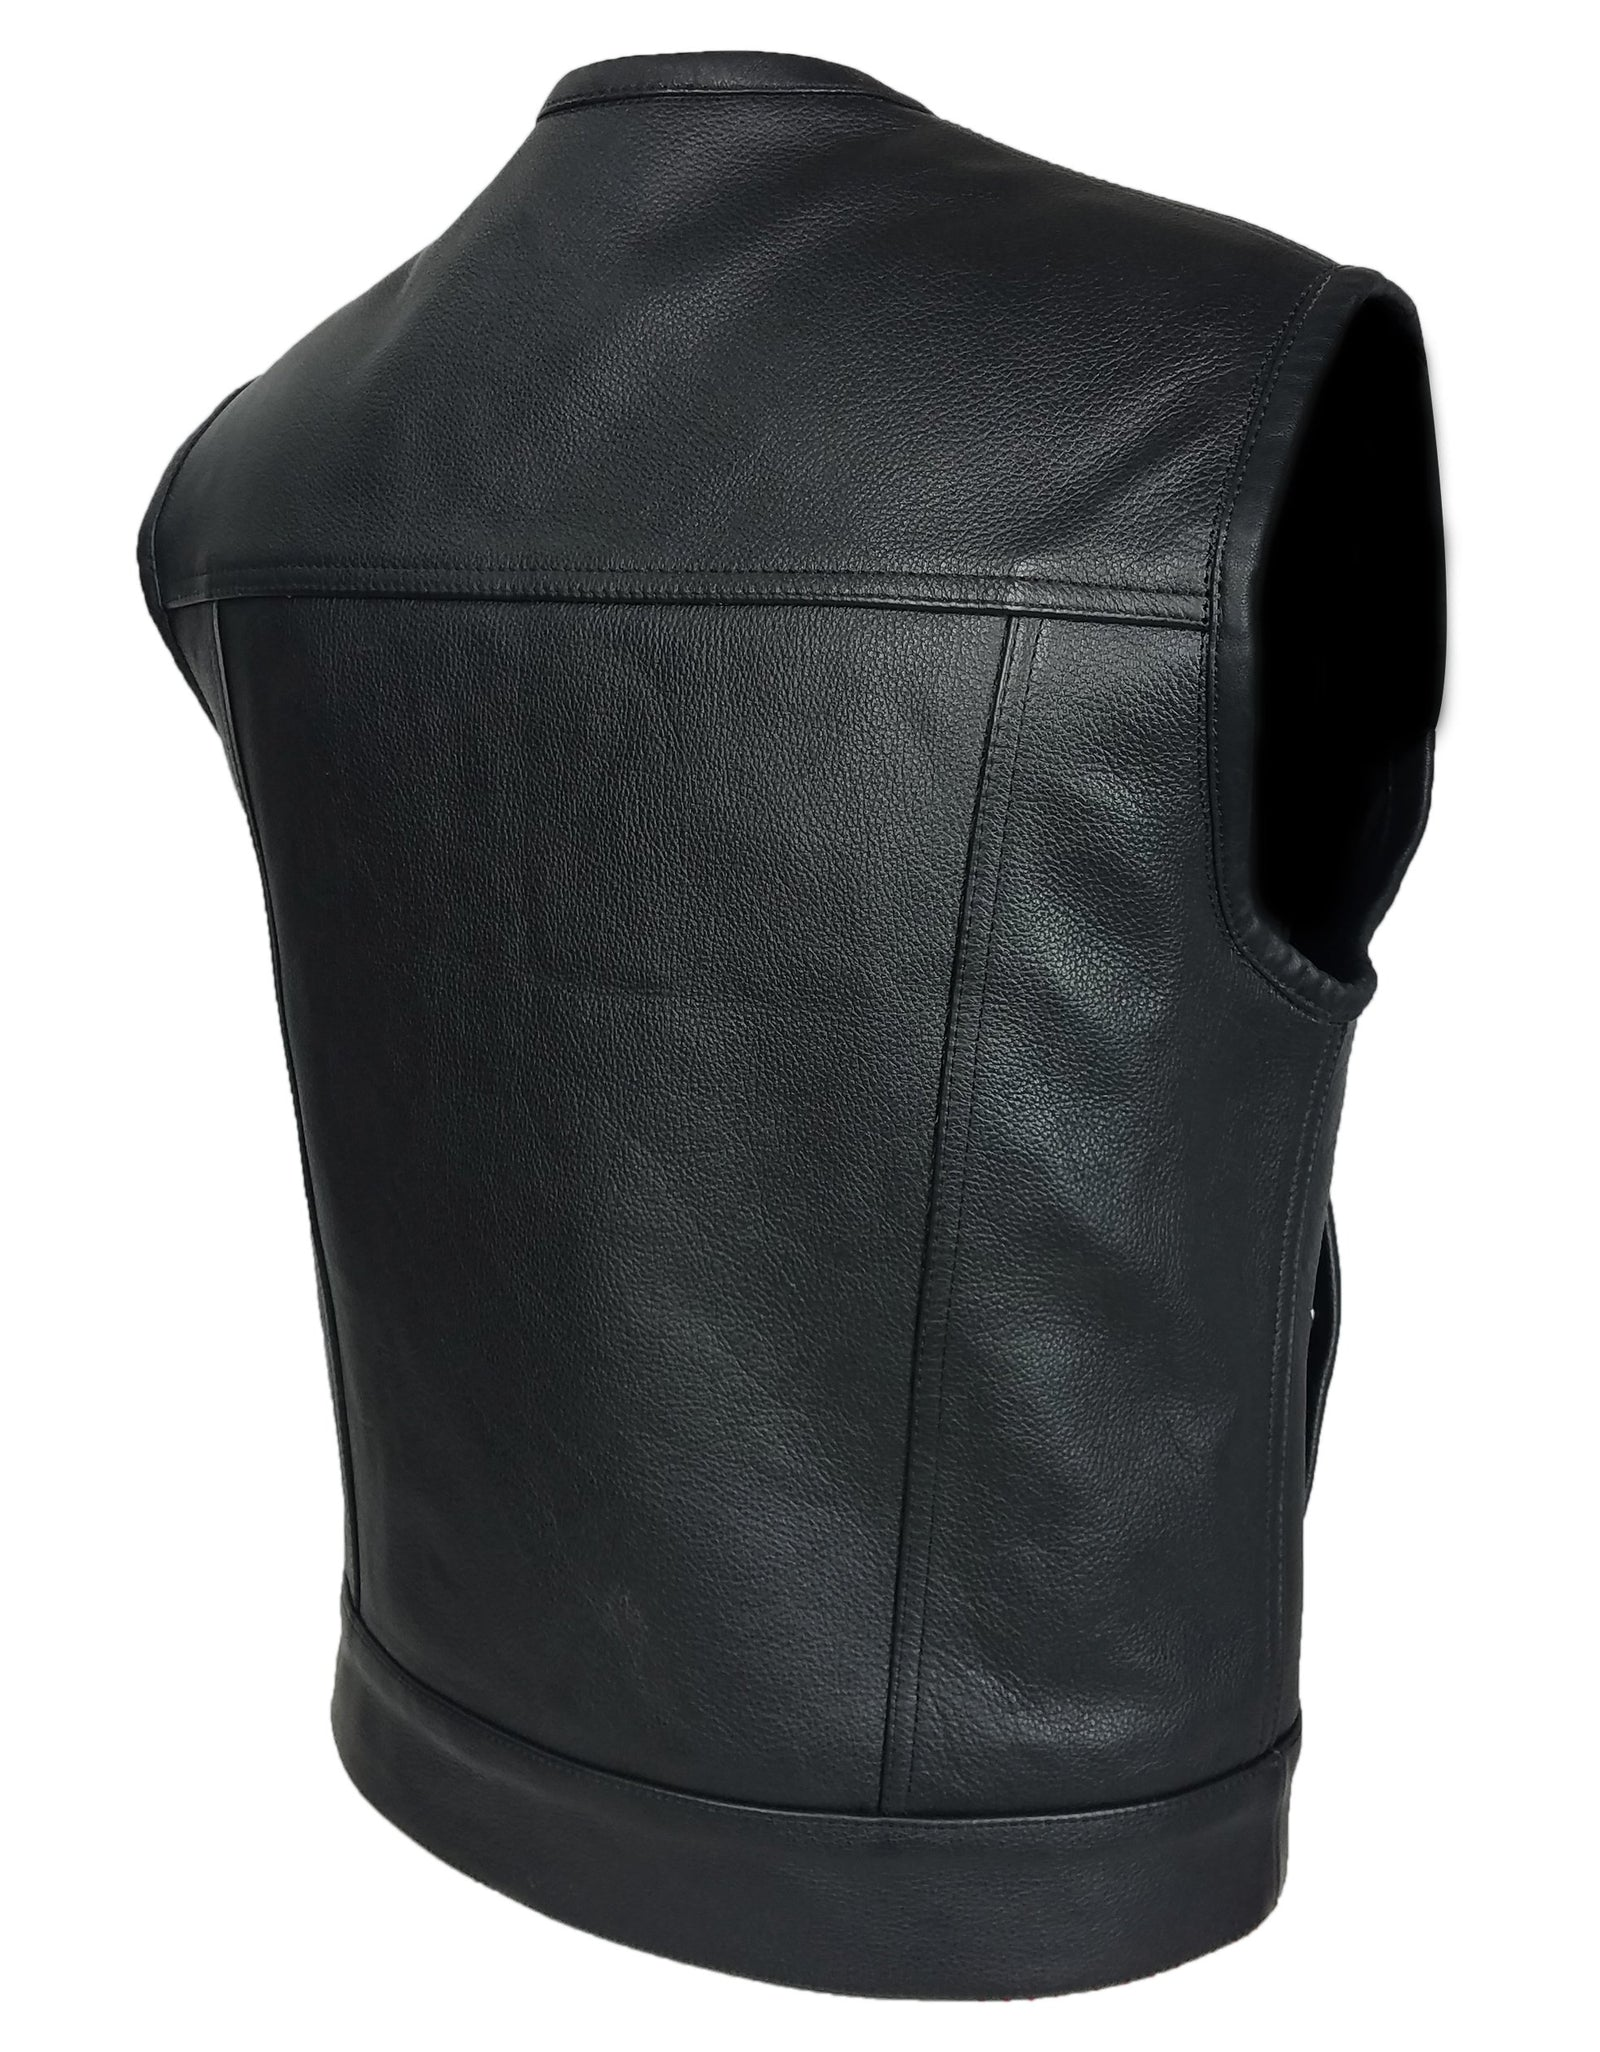 MotoArt Cowhide Leather Vest w/ Concealed Carry